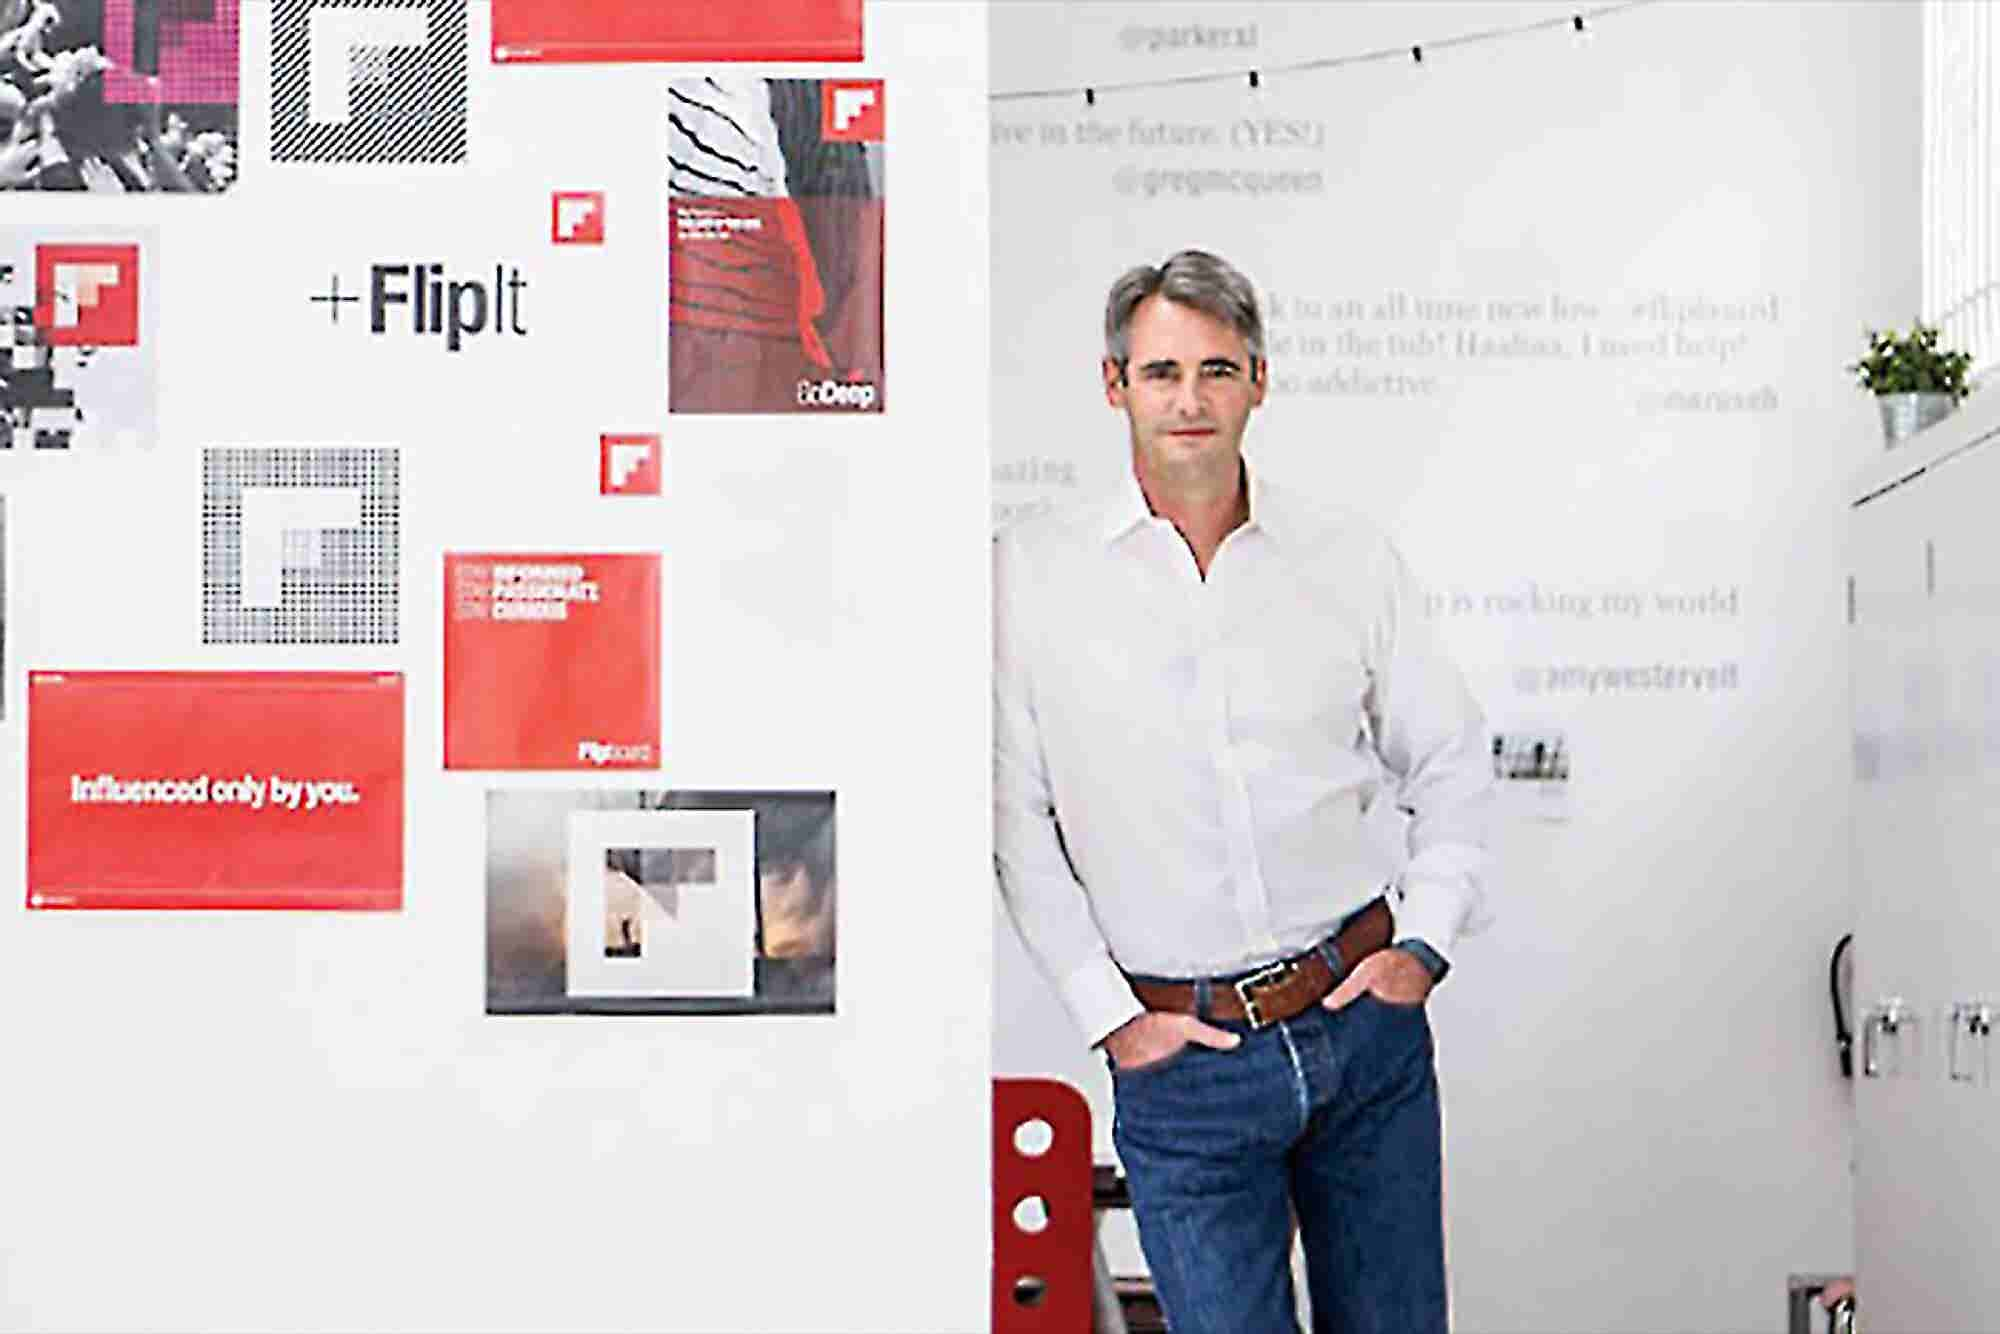 The Inside Story of Flipboard, the App That Makes Digital Content Look Magazine Glossy